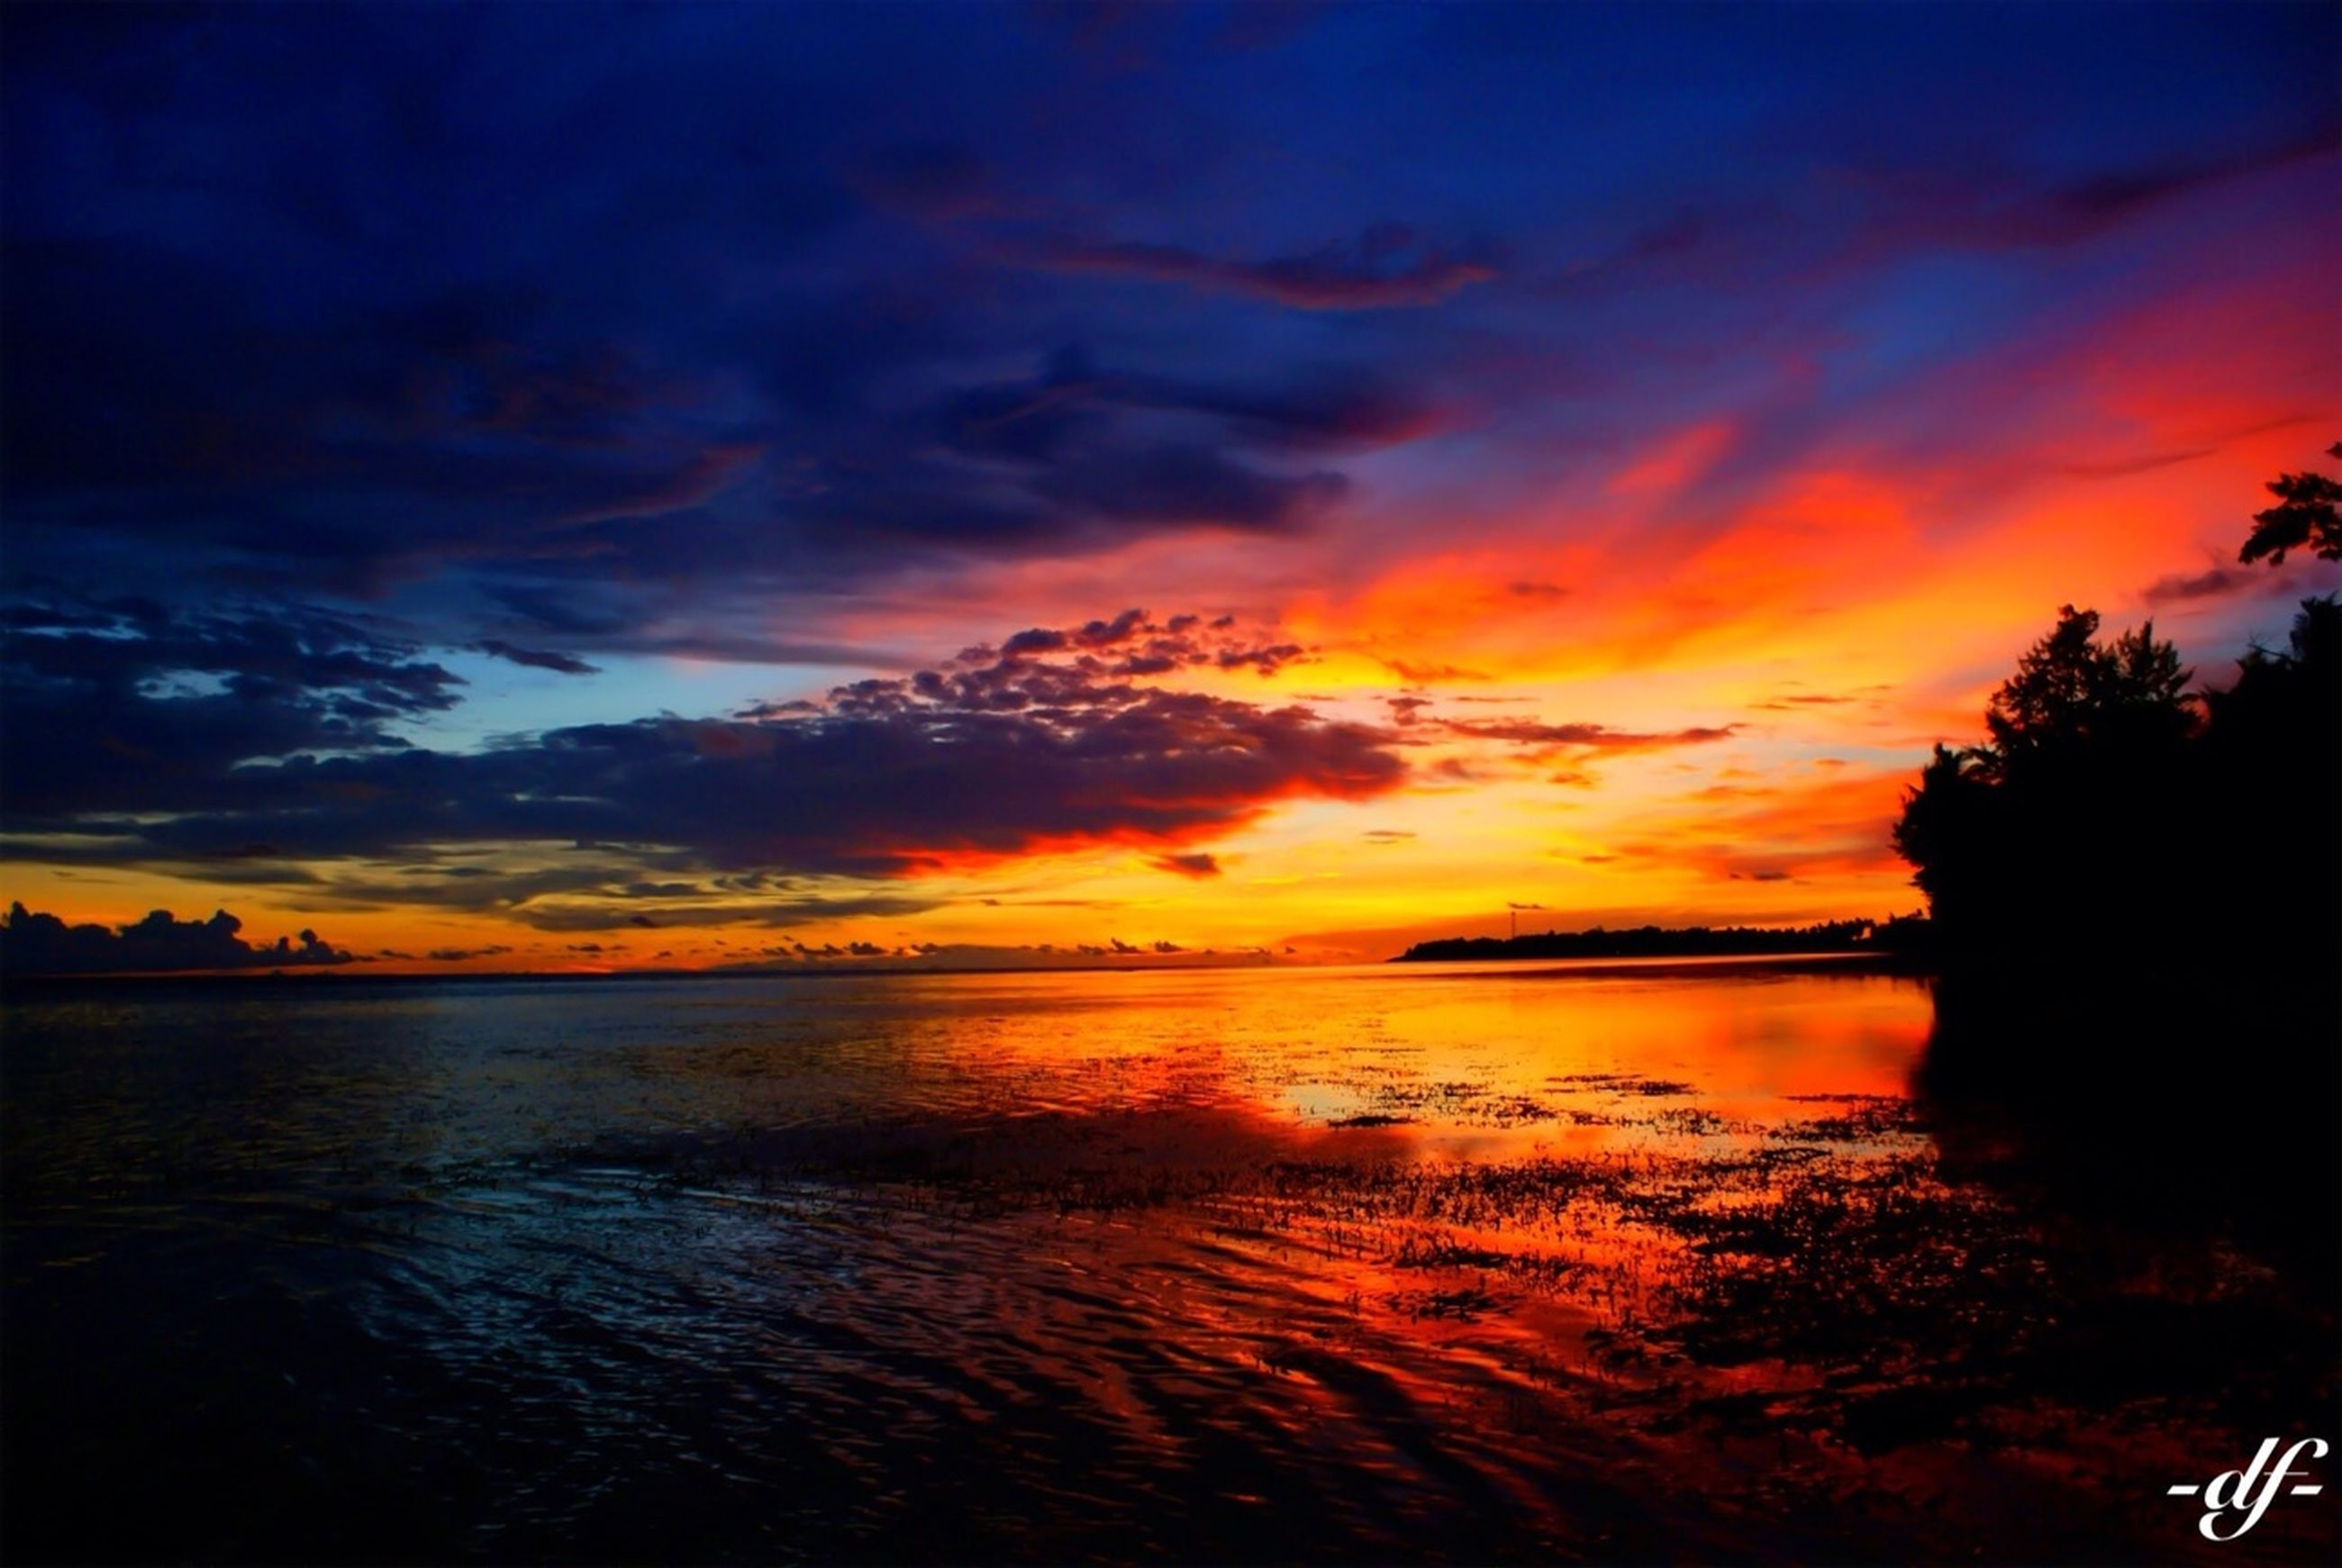 sunset, sea, water, scenics, sky, beauty in nature, tranquil scene, tranquility, orange color, horizon over water, cloud - sky, beach, idyllic, dramatic sky, nature, silhouette, shore, cloud, cloudy, atmospheric mood